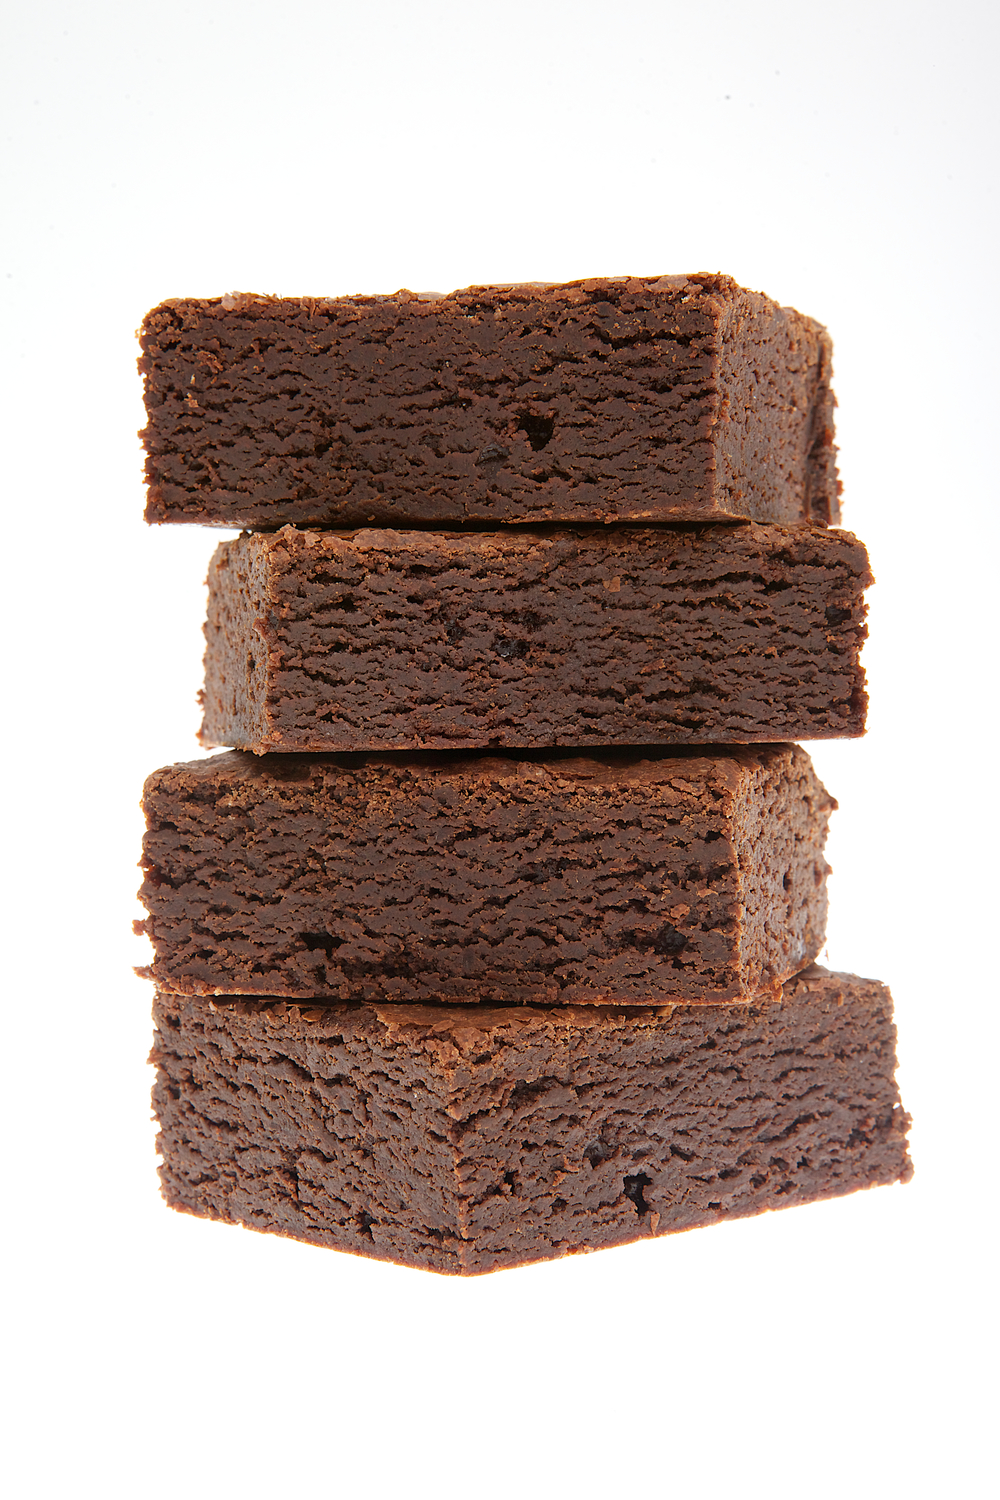 Fantastic Brownie 2.jpg